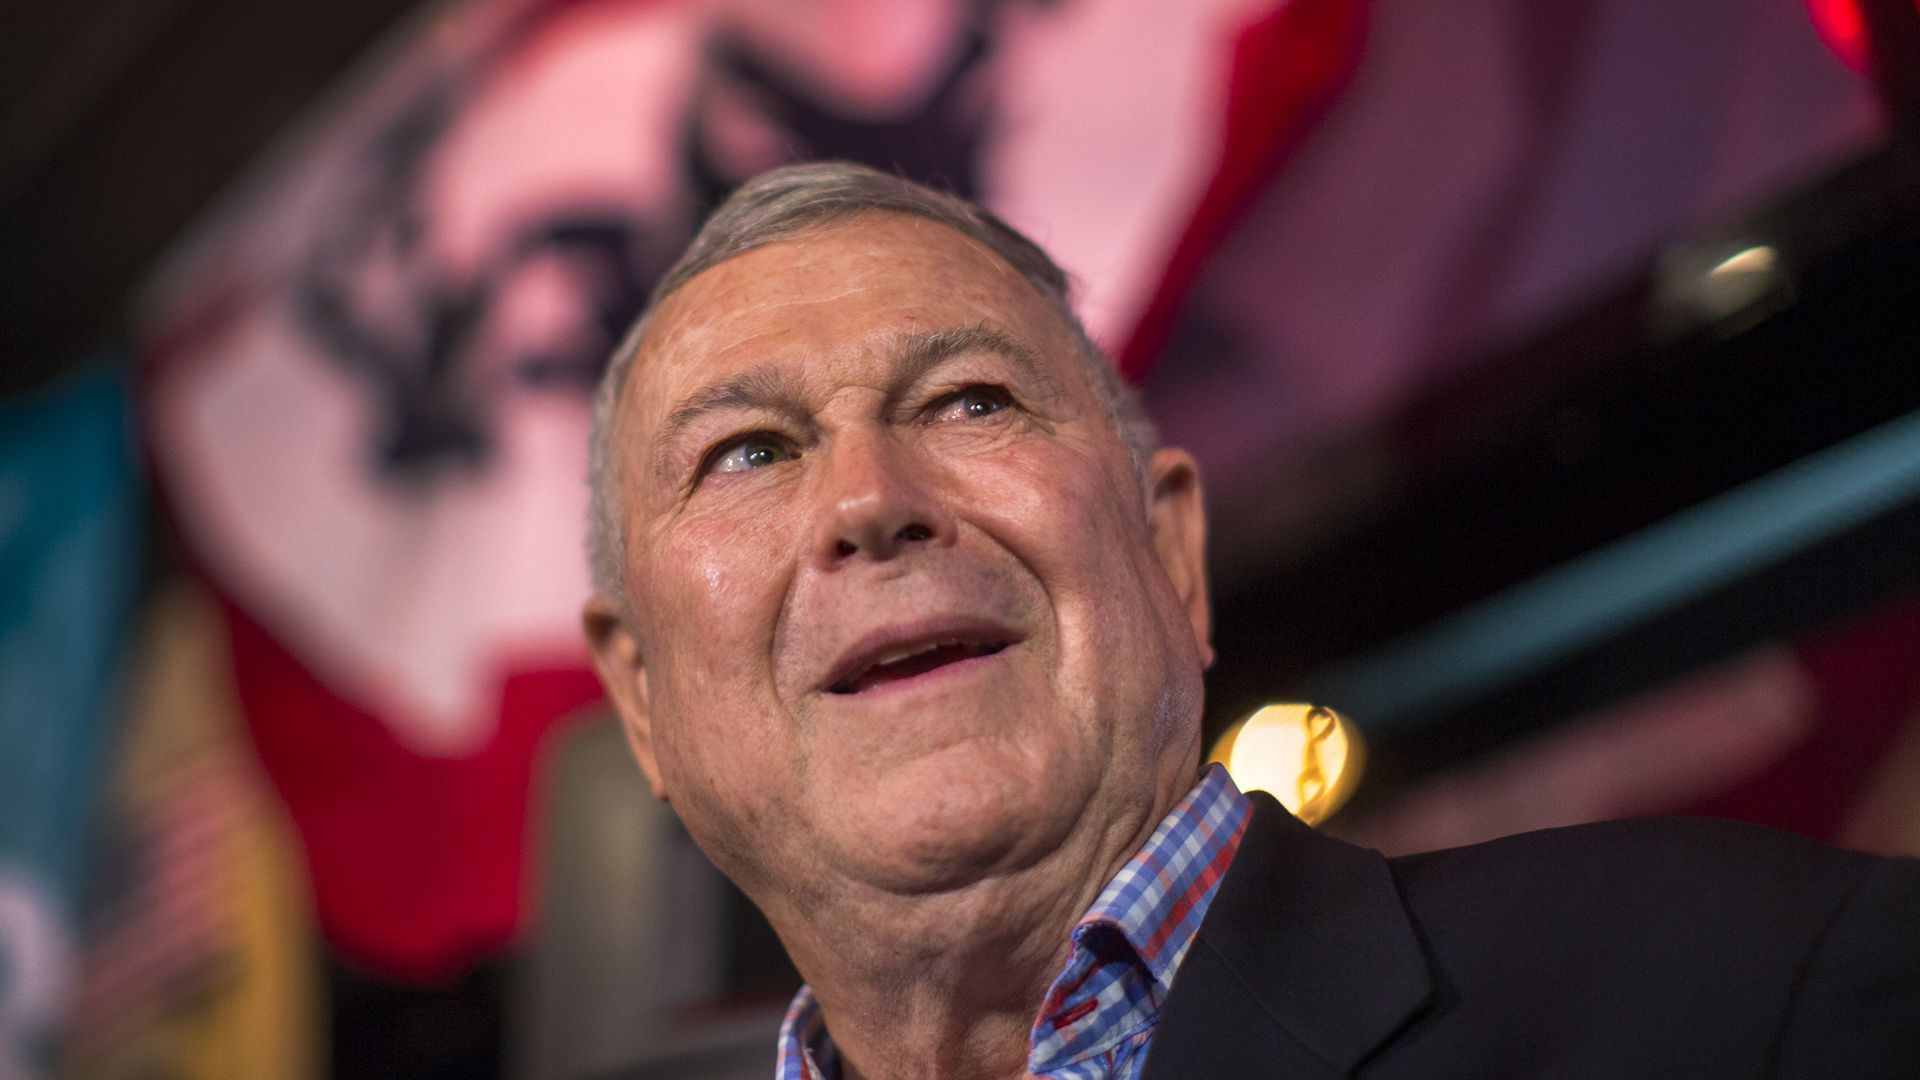 This is a picture of Dana Rohrabacher